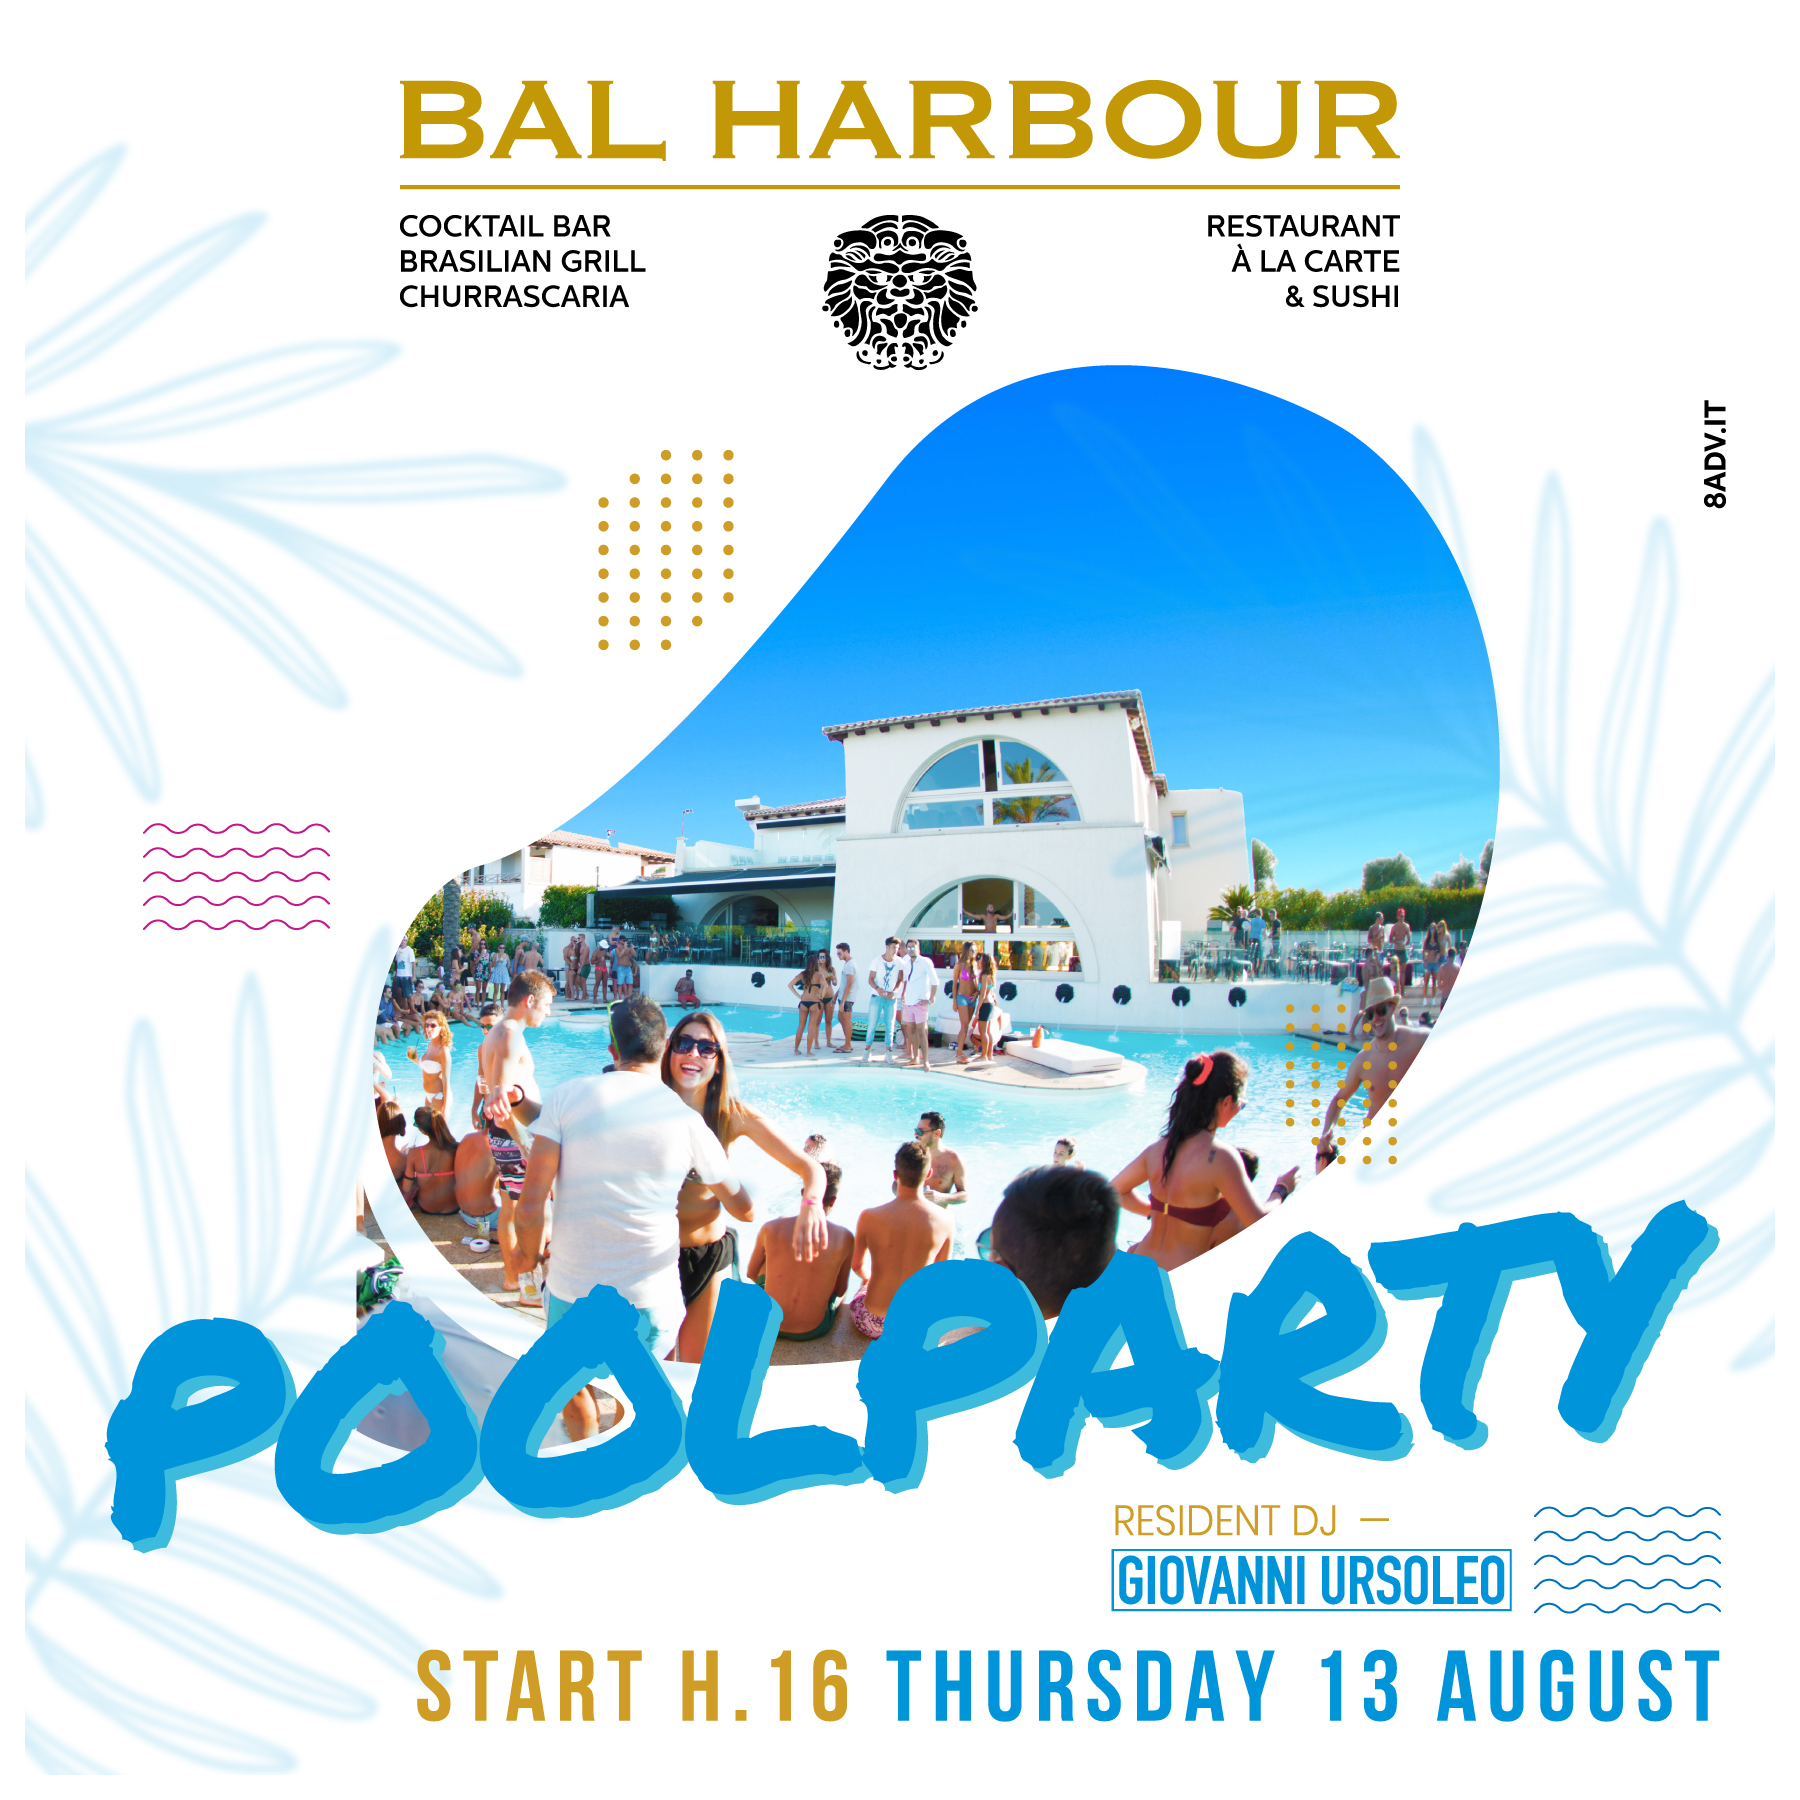 POOL PARTY DAY THURSDAY